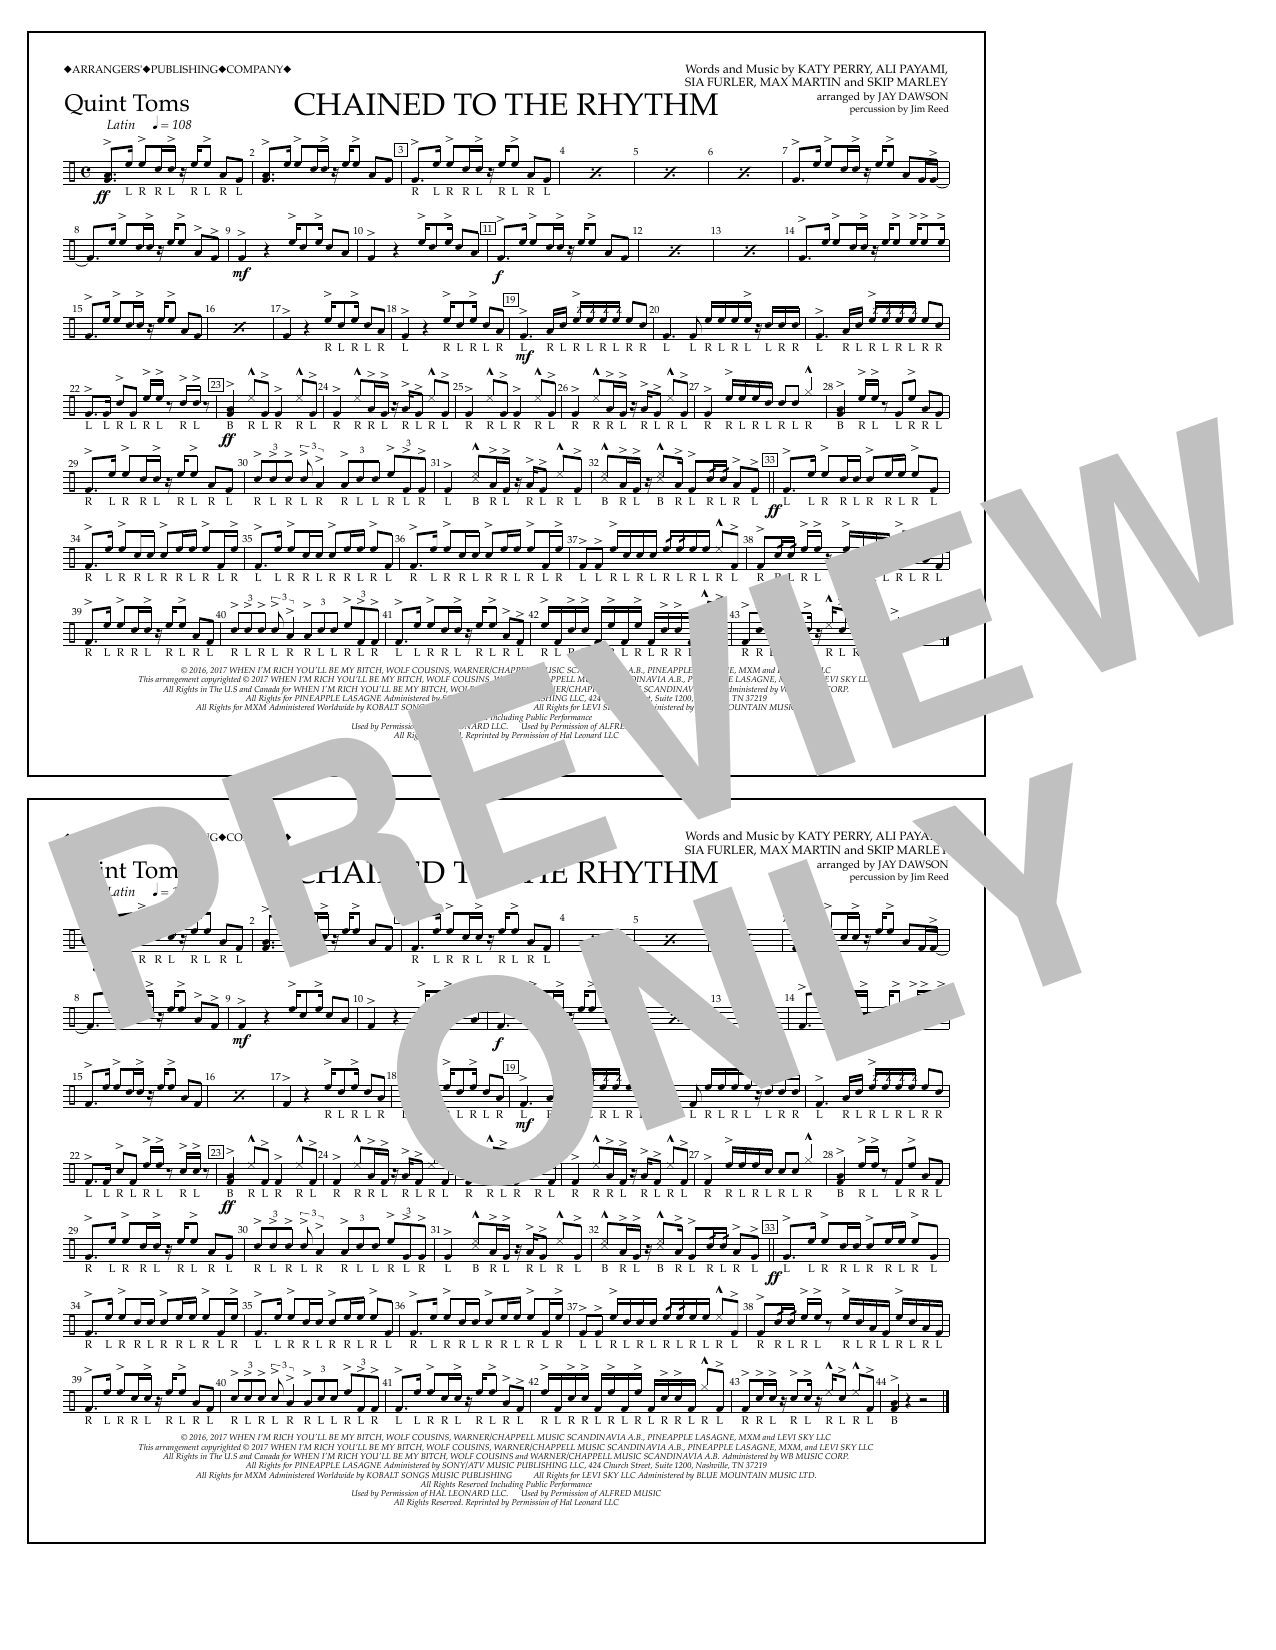 Chained to the Rhythm - Quint-Toms Sheet Music